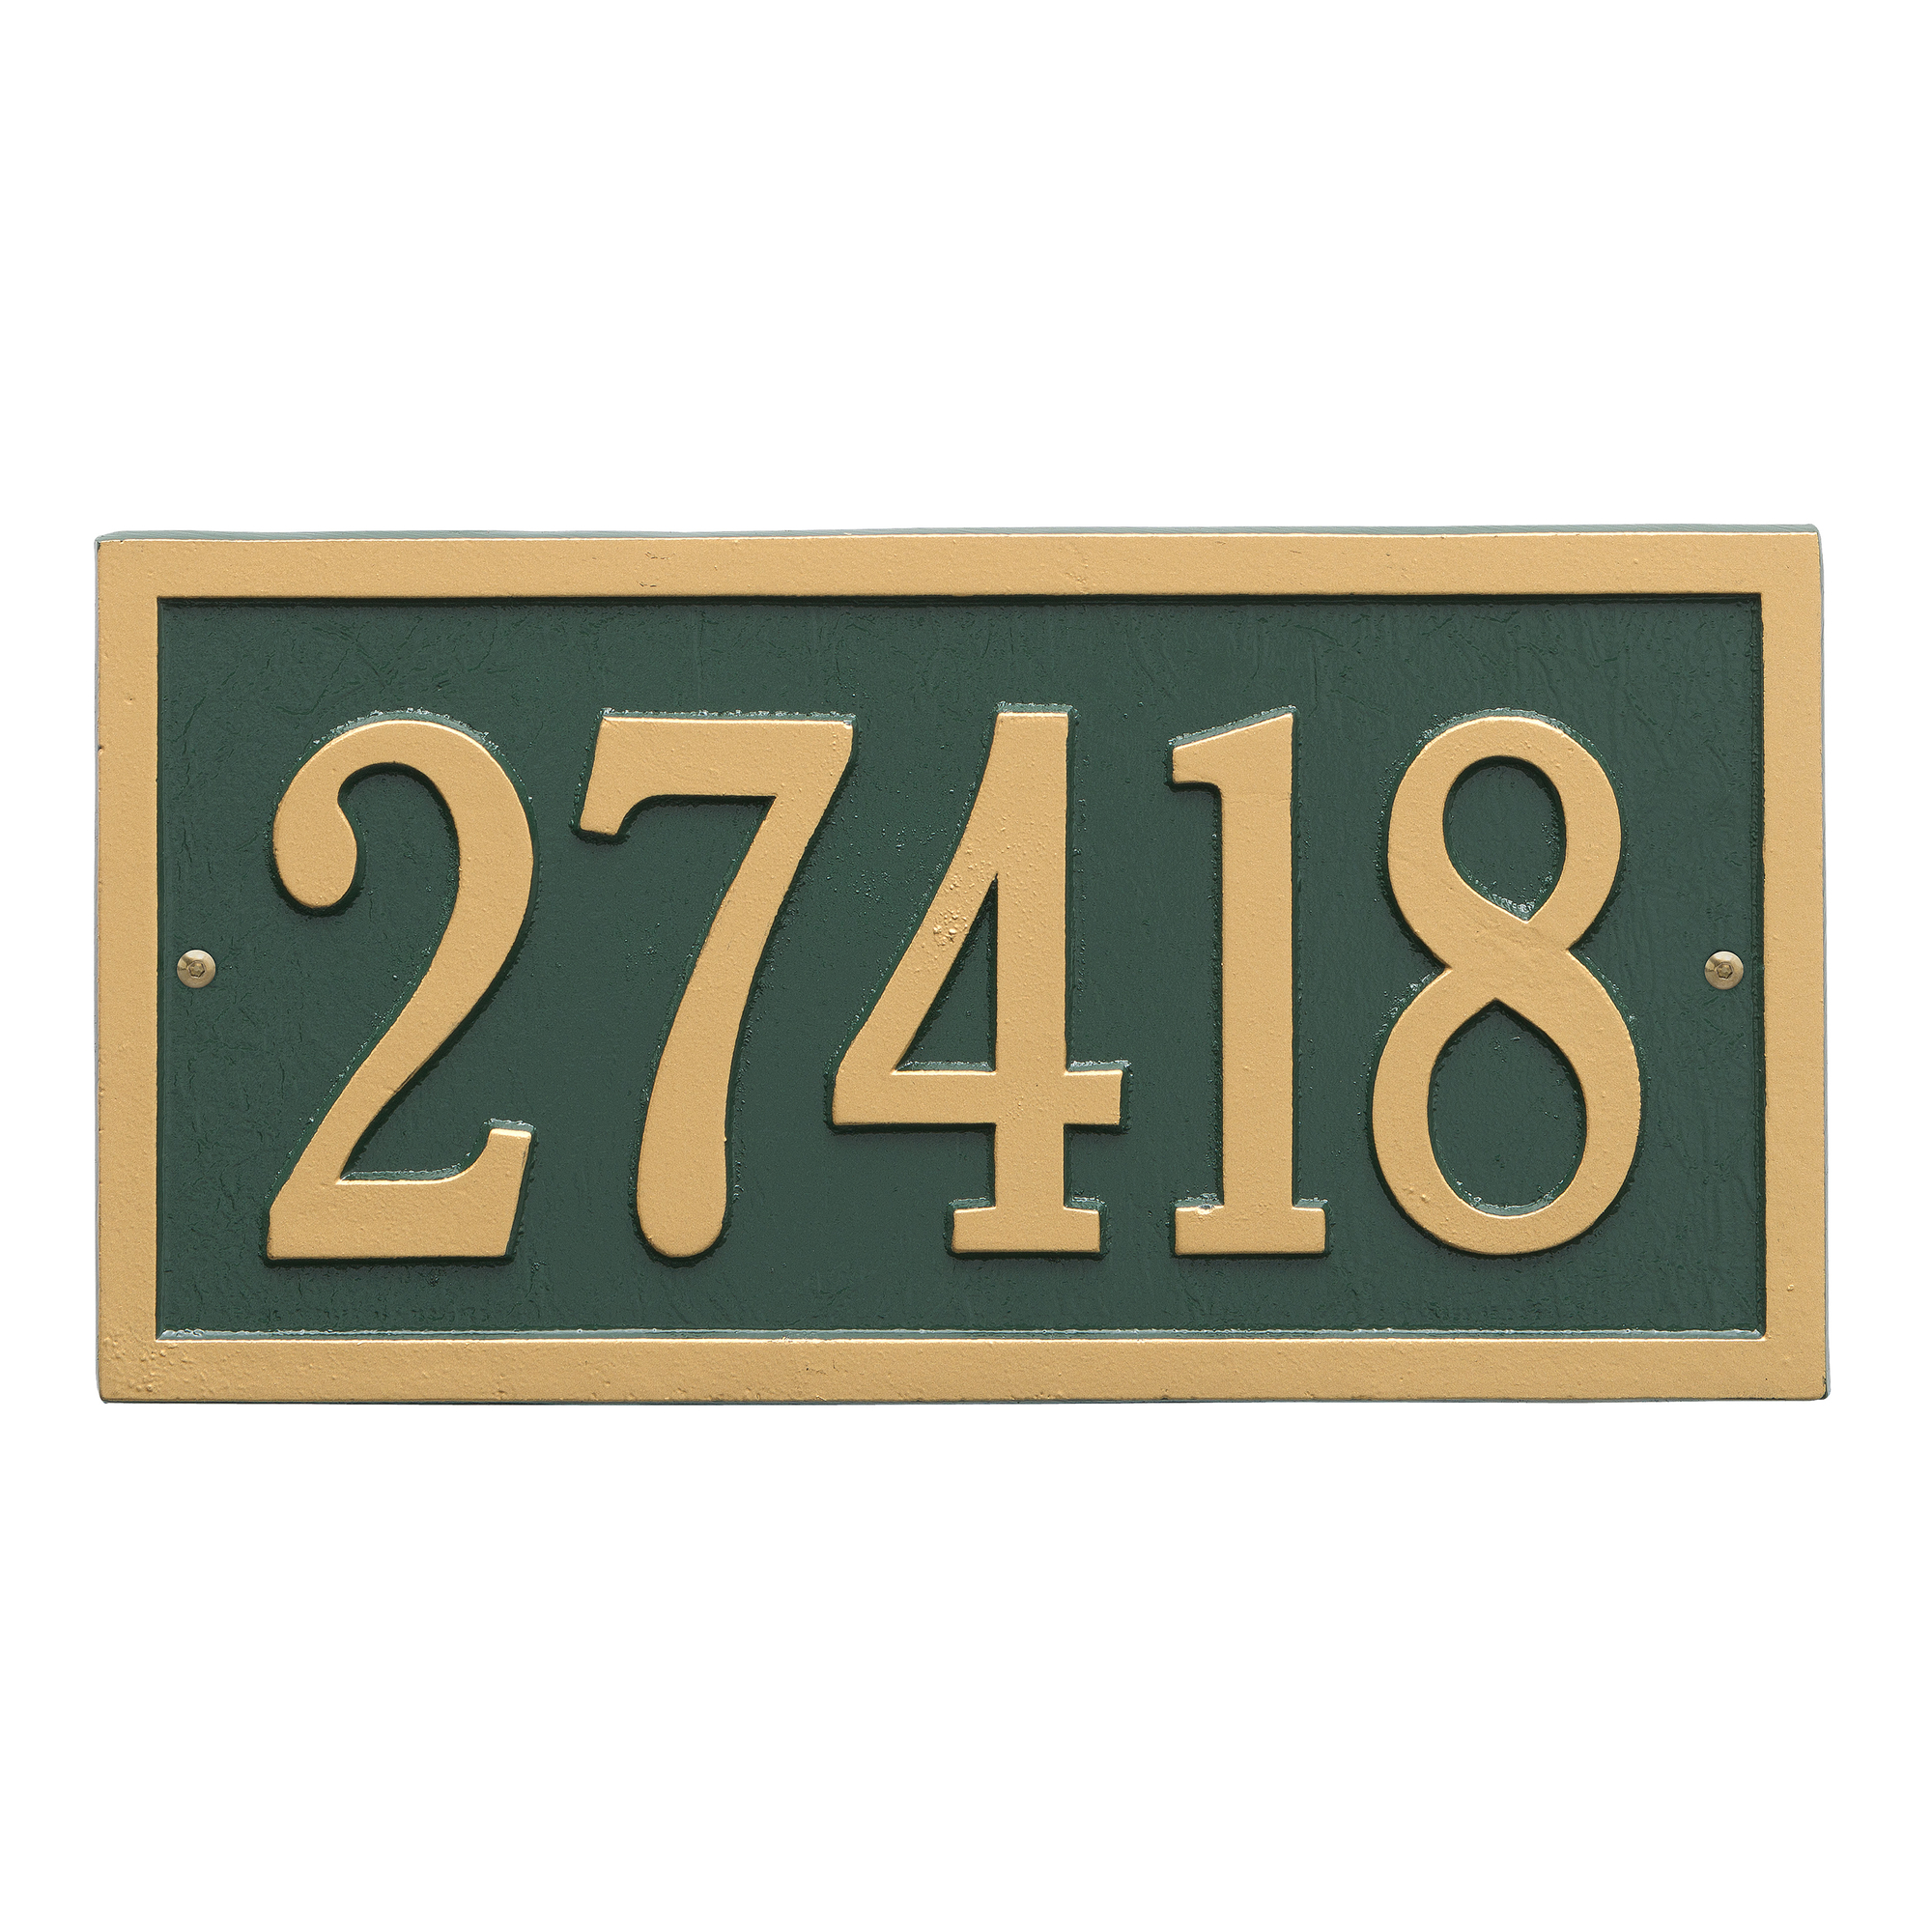 Personalized Bismark 1-Line Standard Wall Plaque in Green/Gold